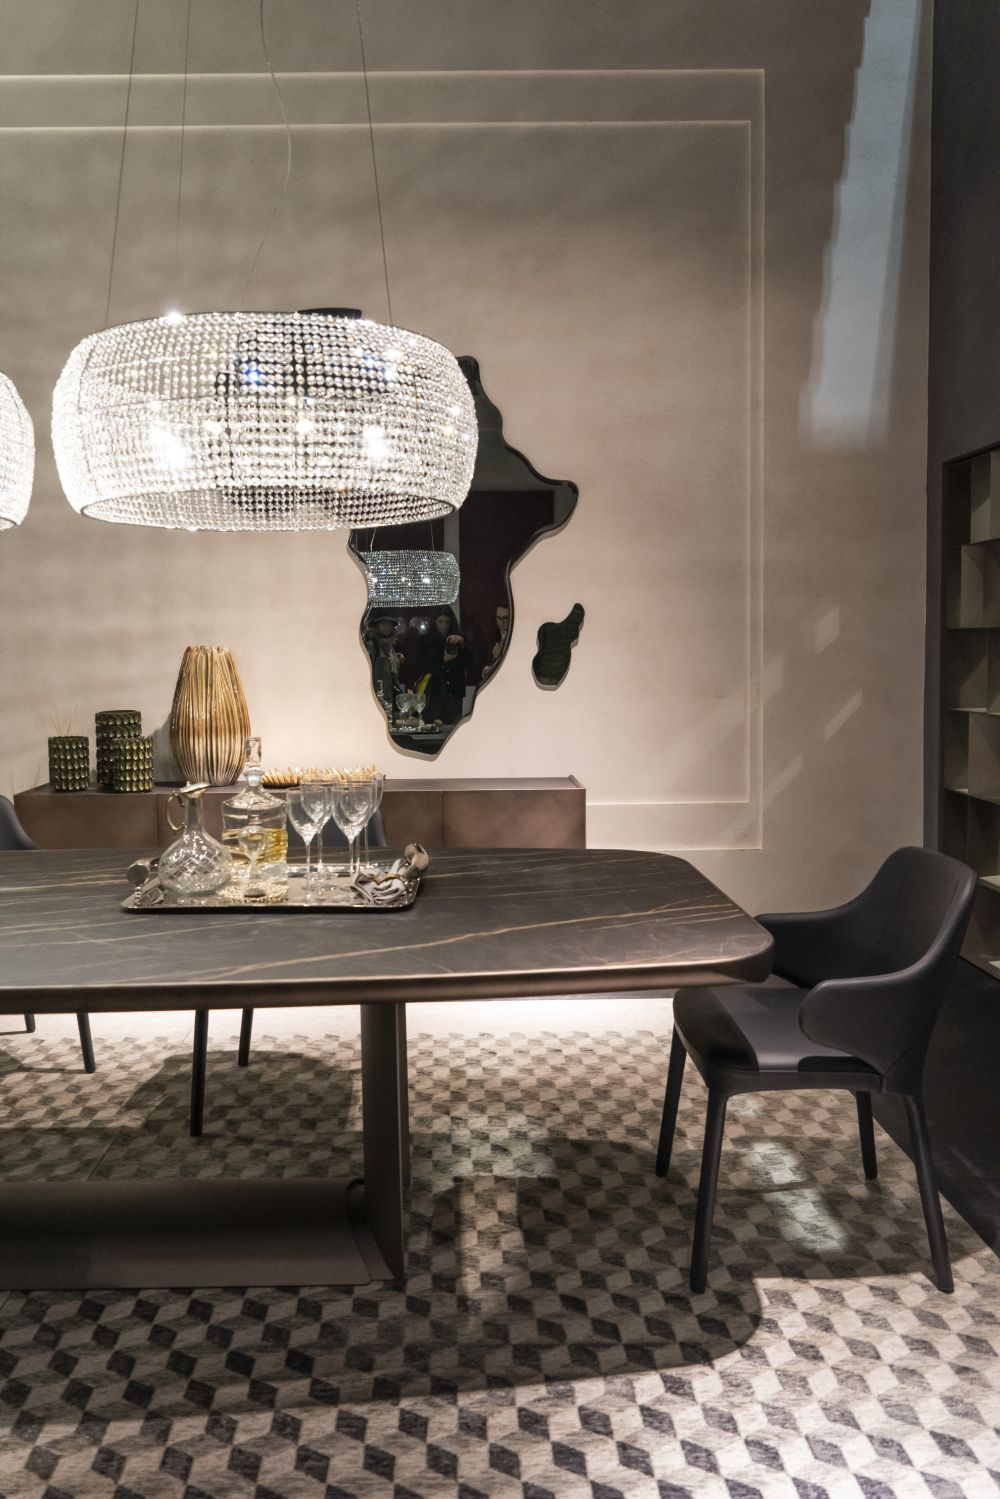 Chandelier over the dining table - Lighting Fixtures that Will Add a Bid Dose of Drama to Your Room